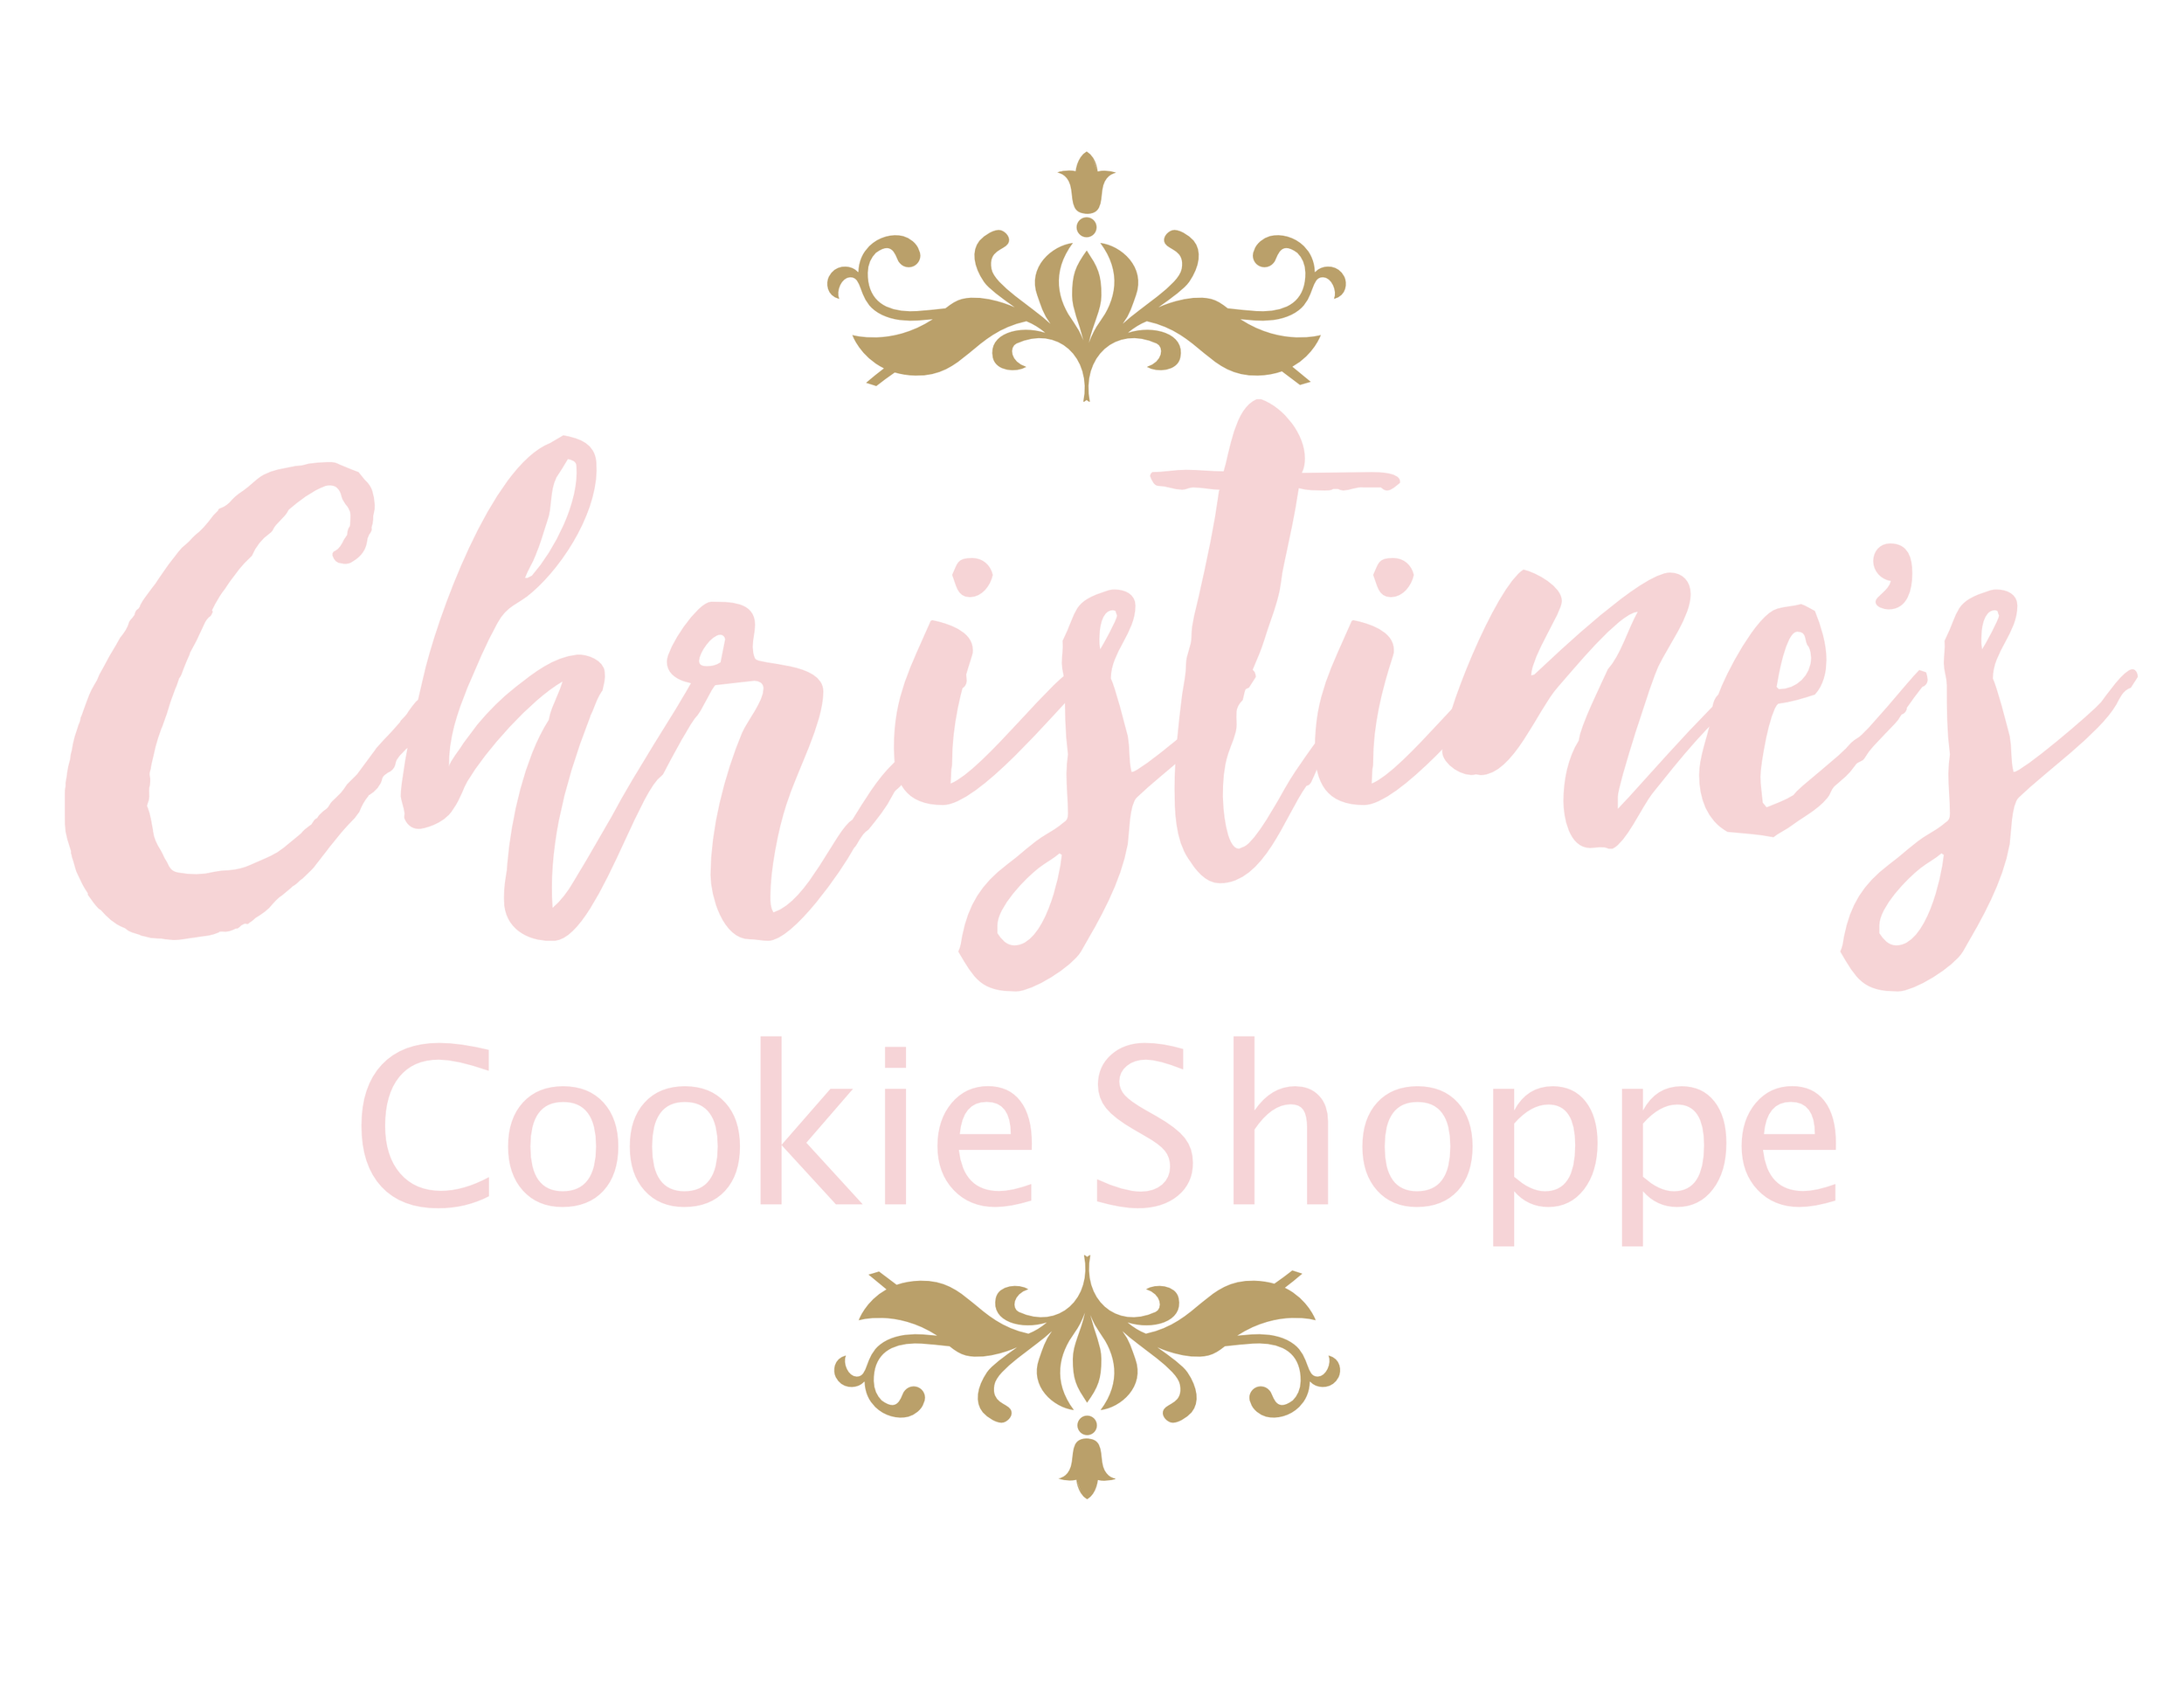 Christines Cookie Shop logo pink with crowns.png